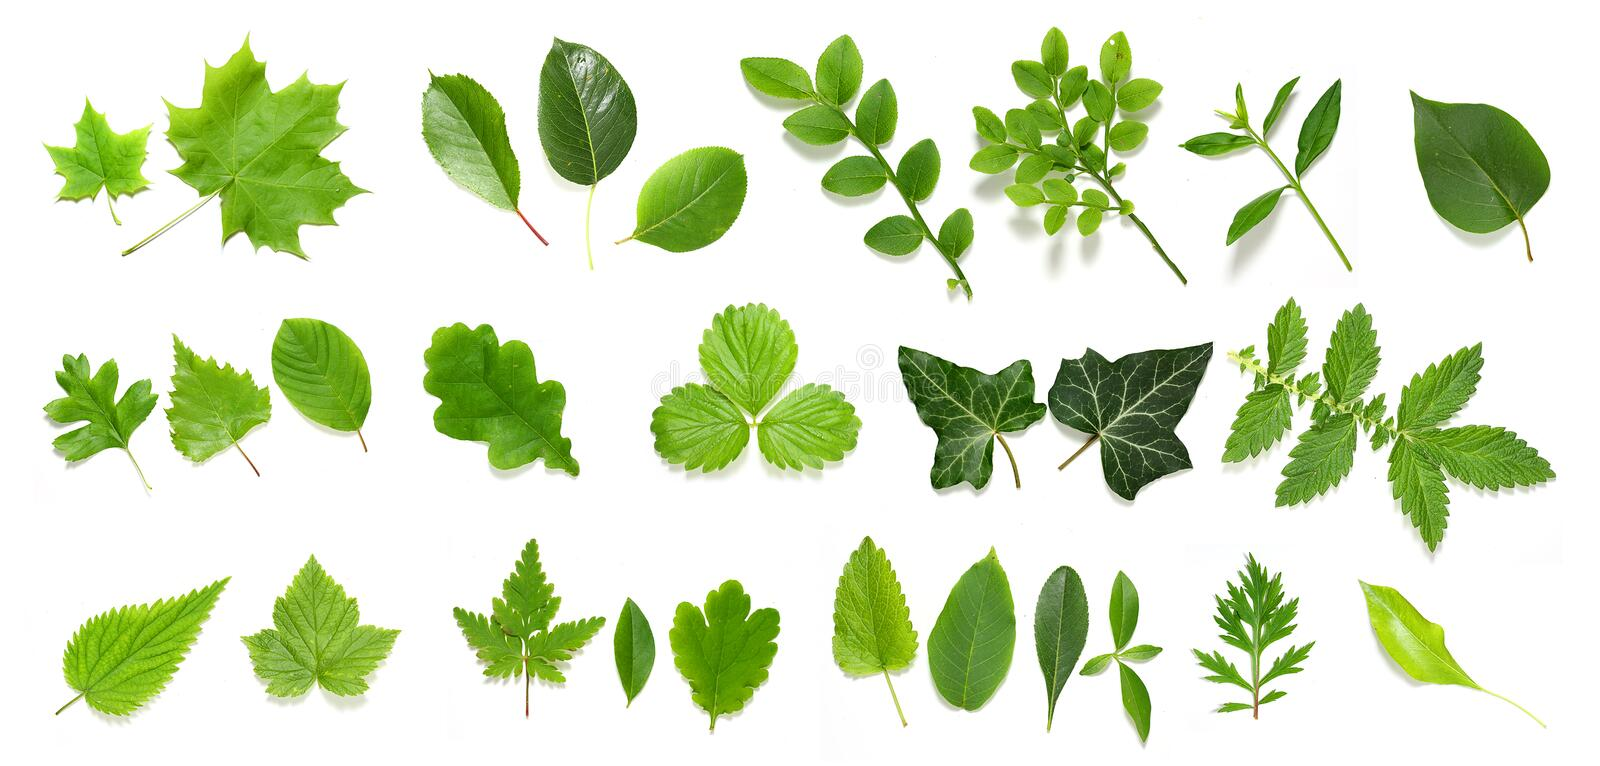 Green leaf collection royalty free stock photos